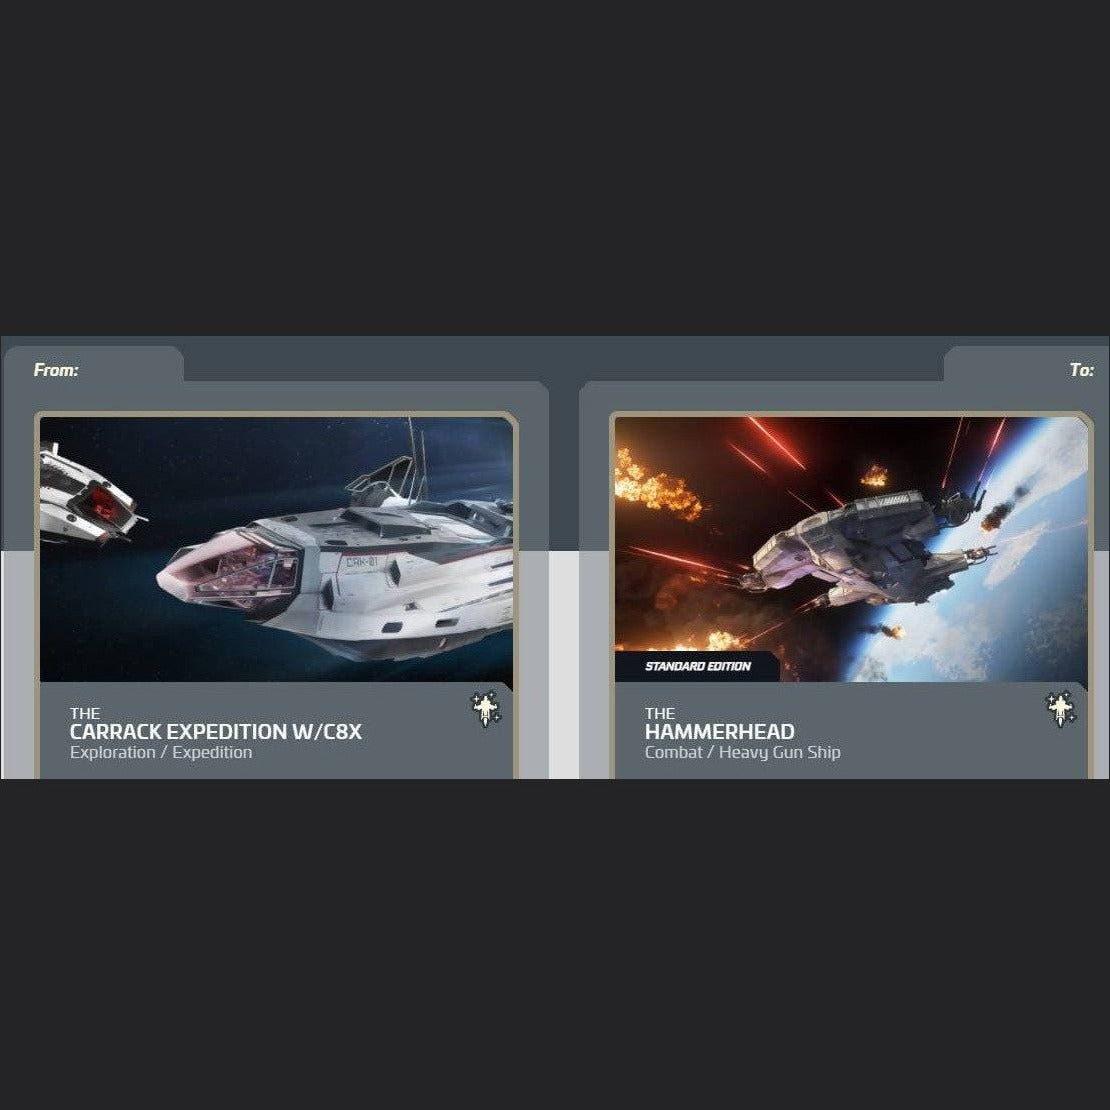 Carrack Expedition w C8X to Hammerhead Standard Edition | Upgrade | Jpeg_Warehouse | Space Foundry Marketplace.